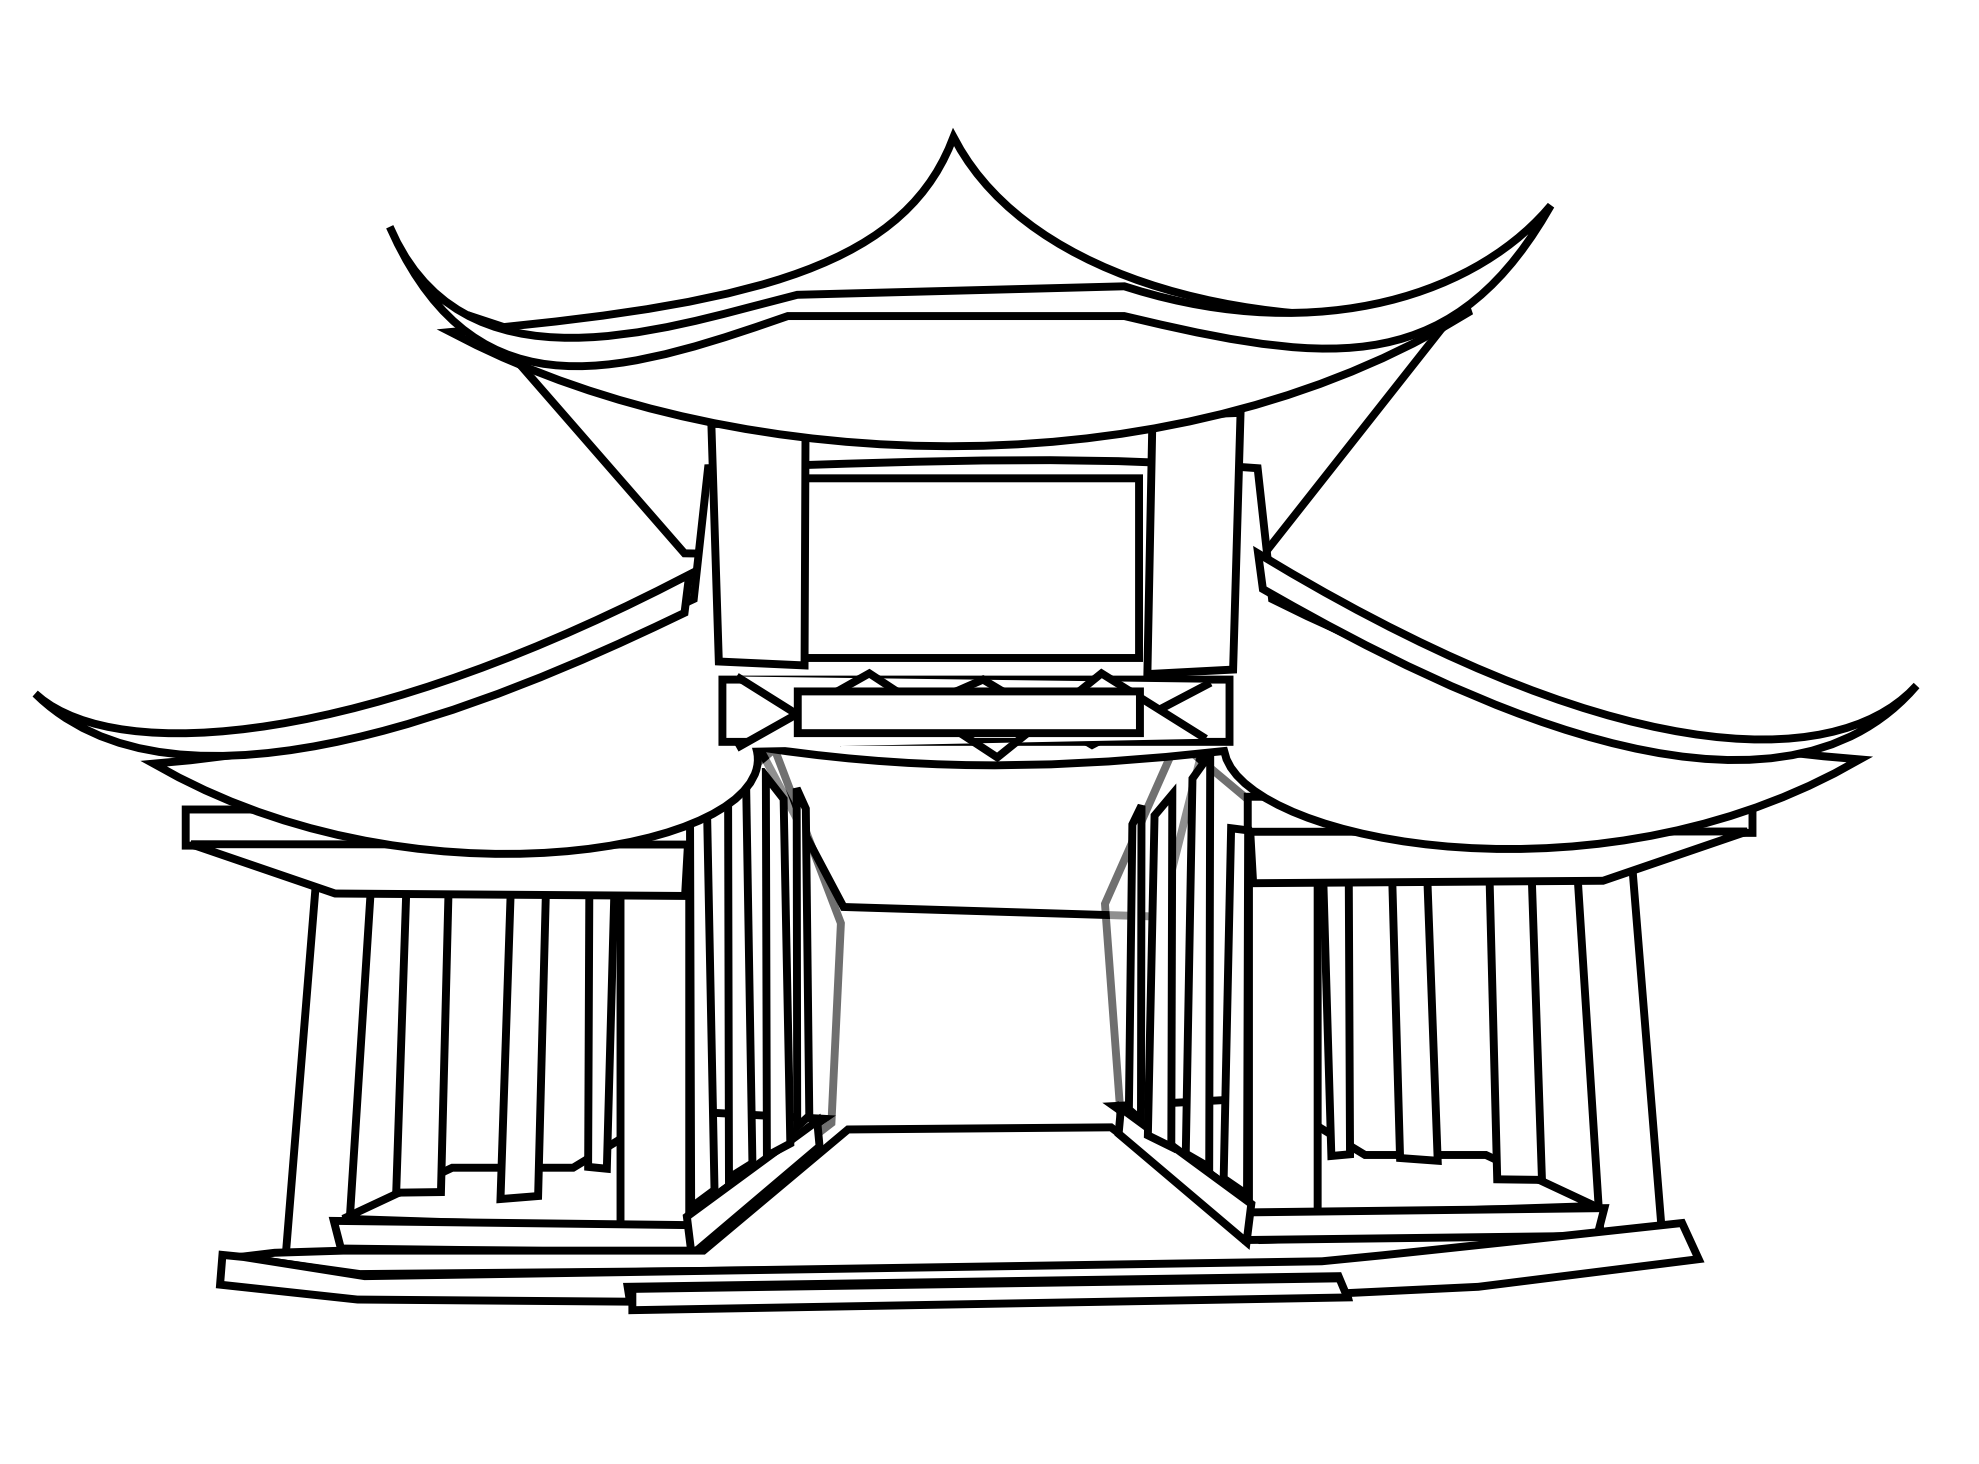 Drawing samurai temple. China clip art